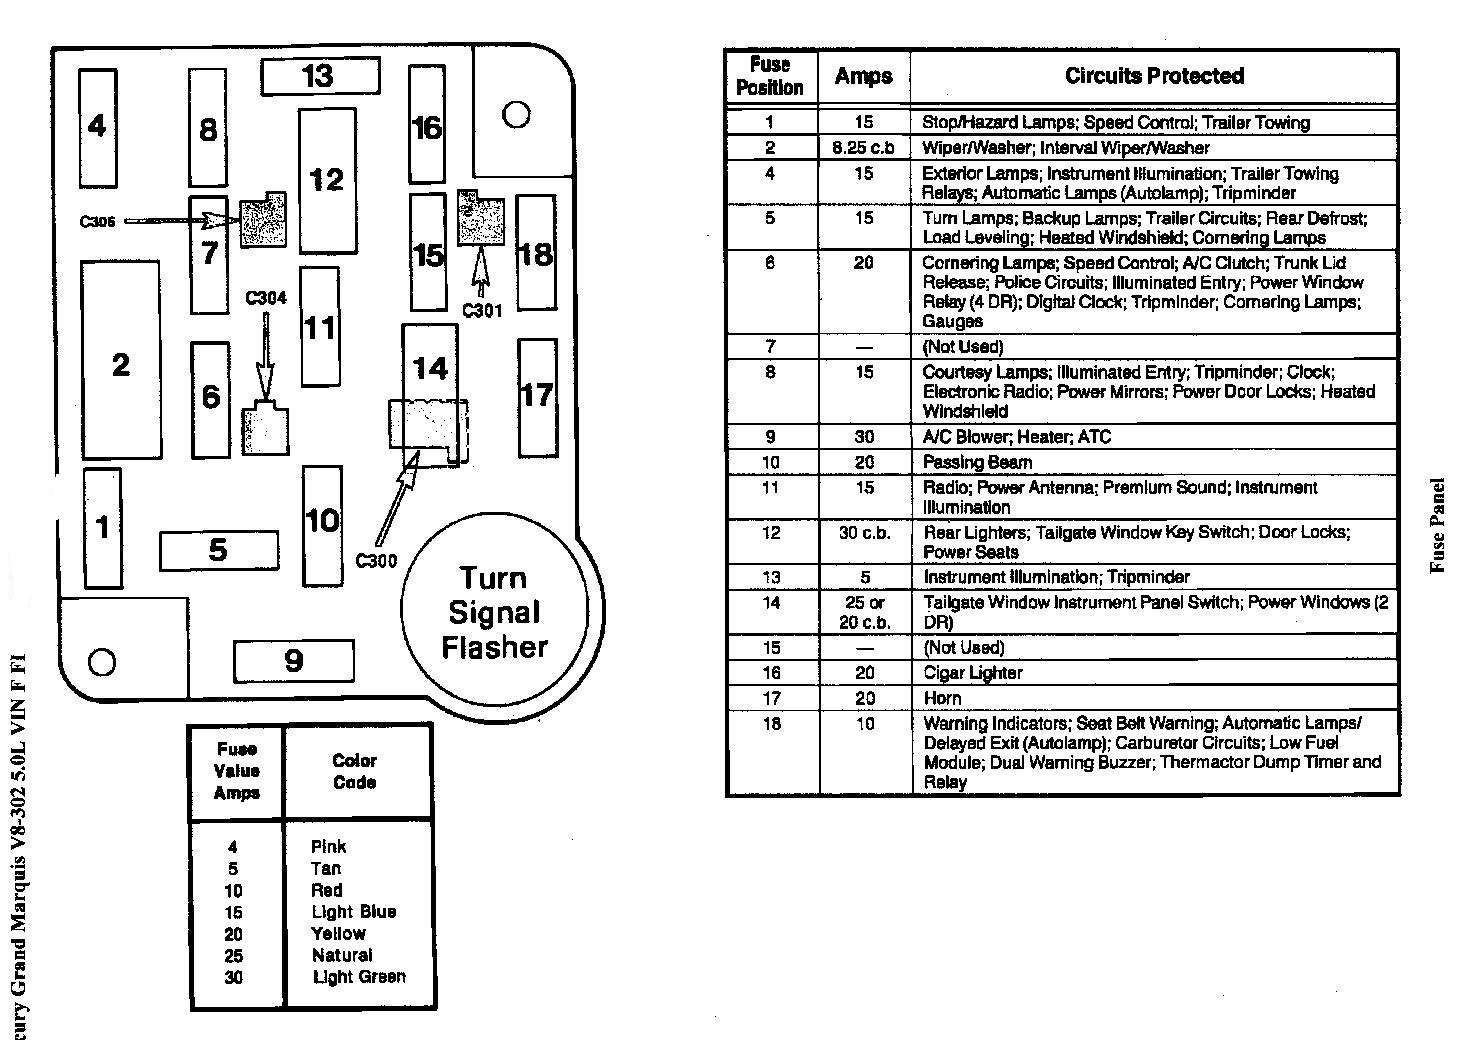 hight resolution of fuse box diagram for 2003 mercury grand marquis wiring diagram sheet 2000 mercury grand marquis fuse panel diagram